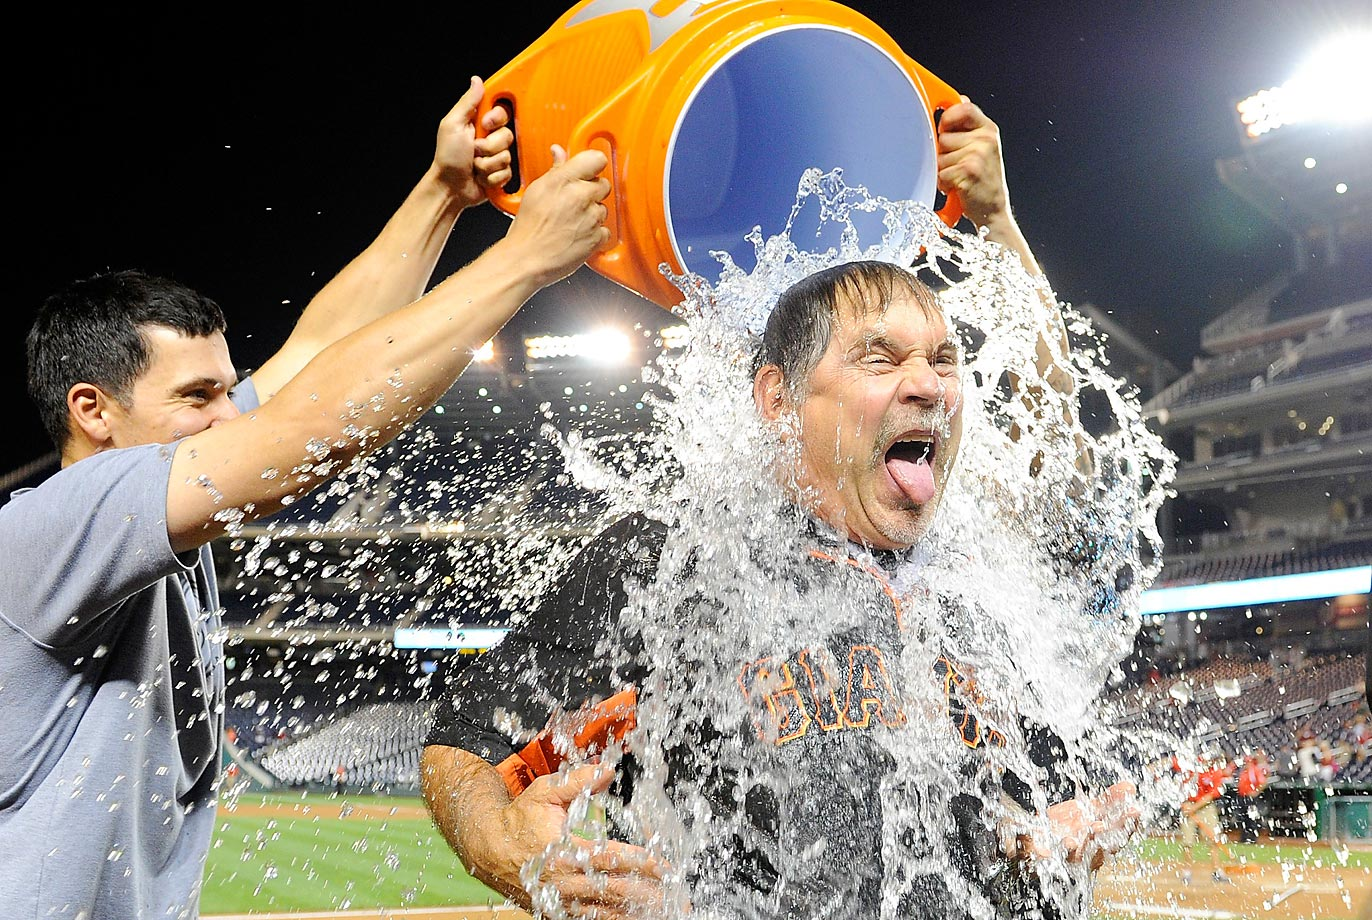 San Francisco Giants manager Bruce Bochy takes the ALS Ice Bucket Challenge after a game against the Nationals in Washington on August 22.